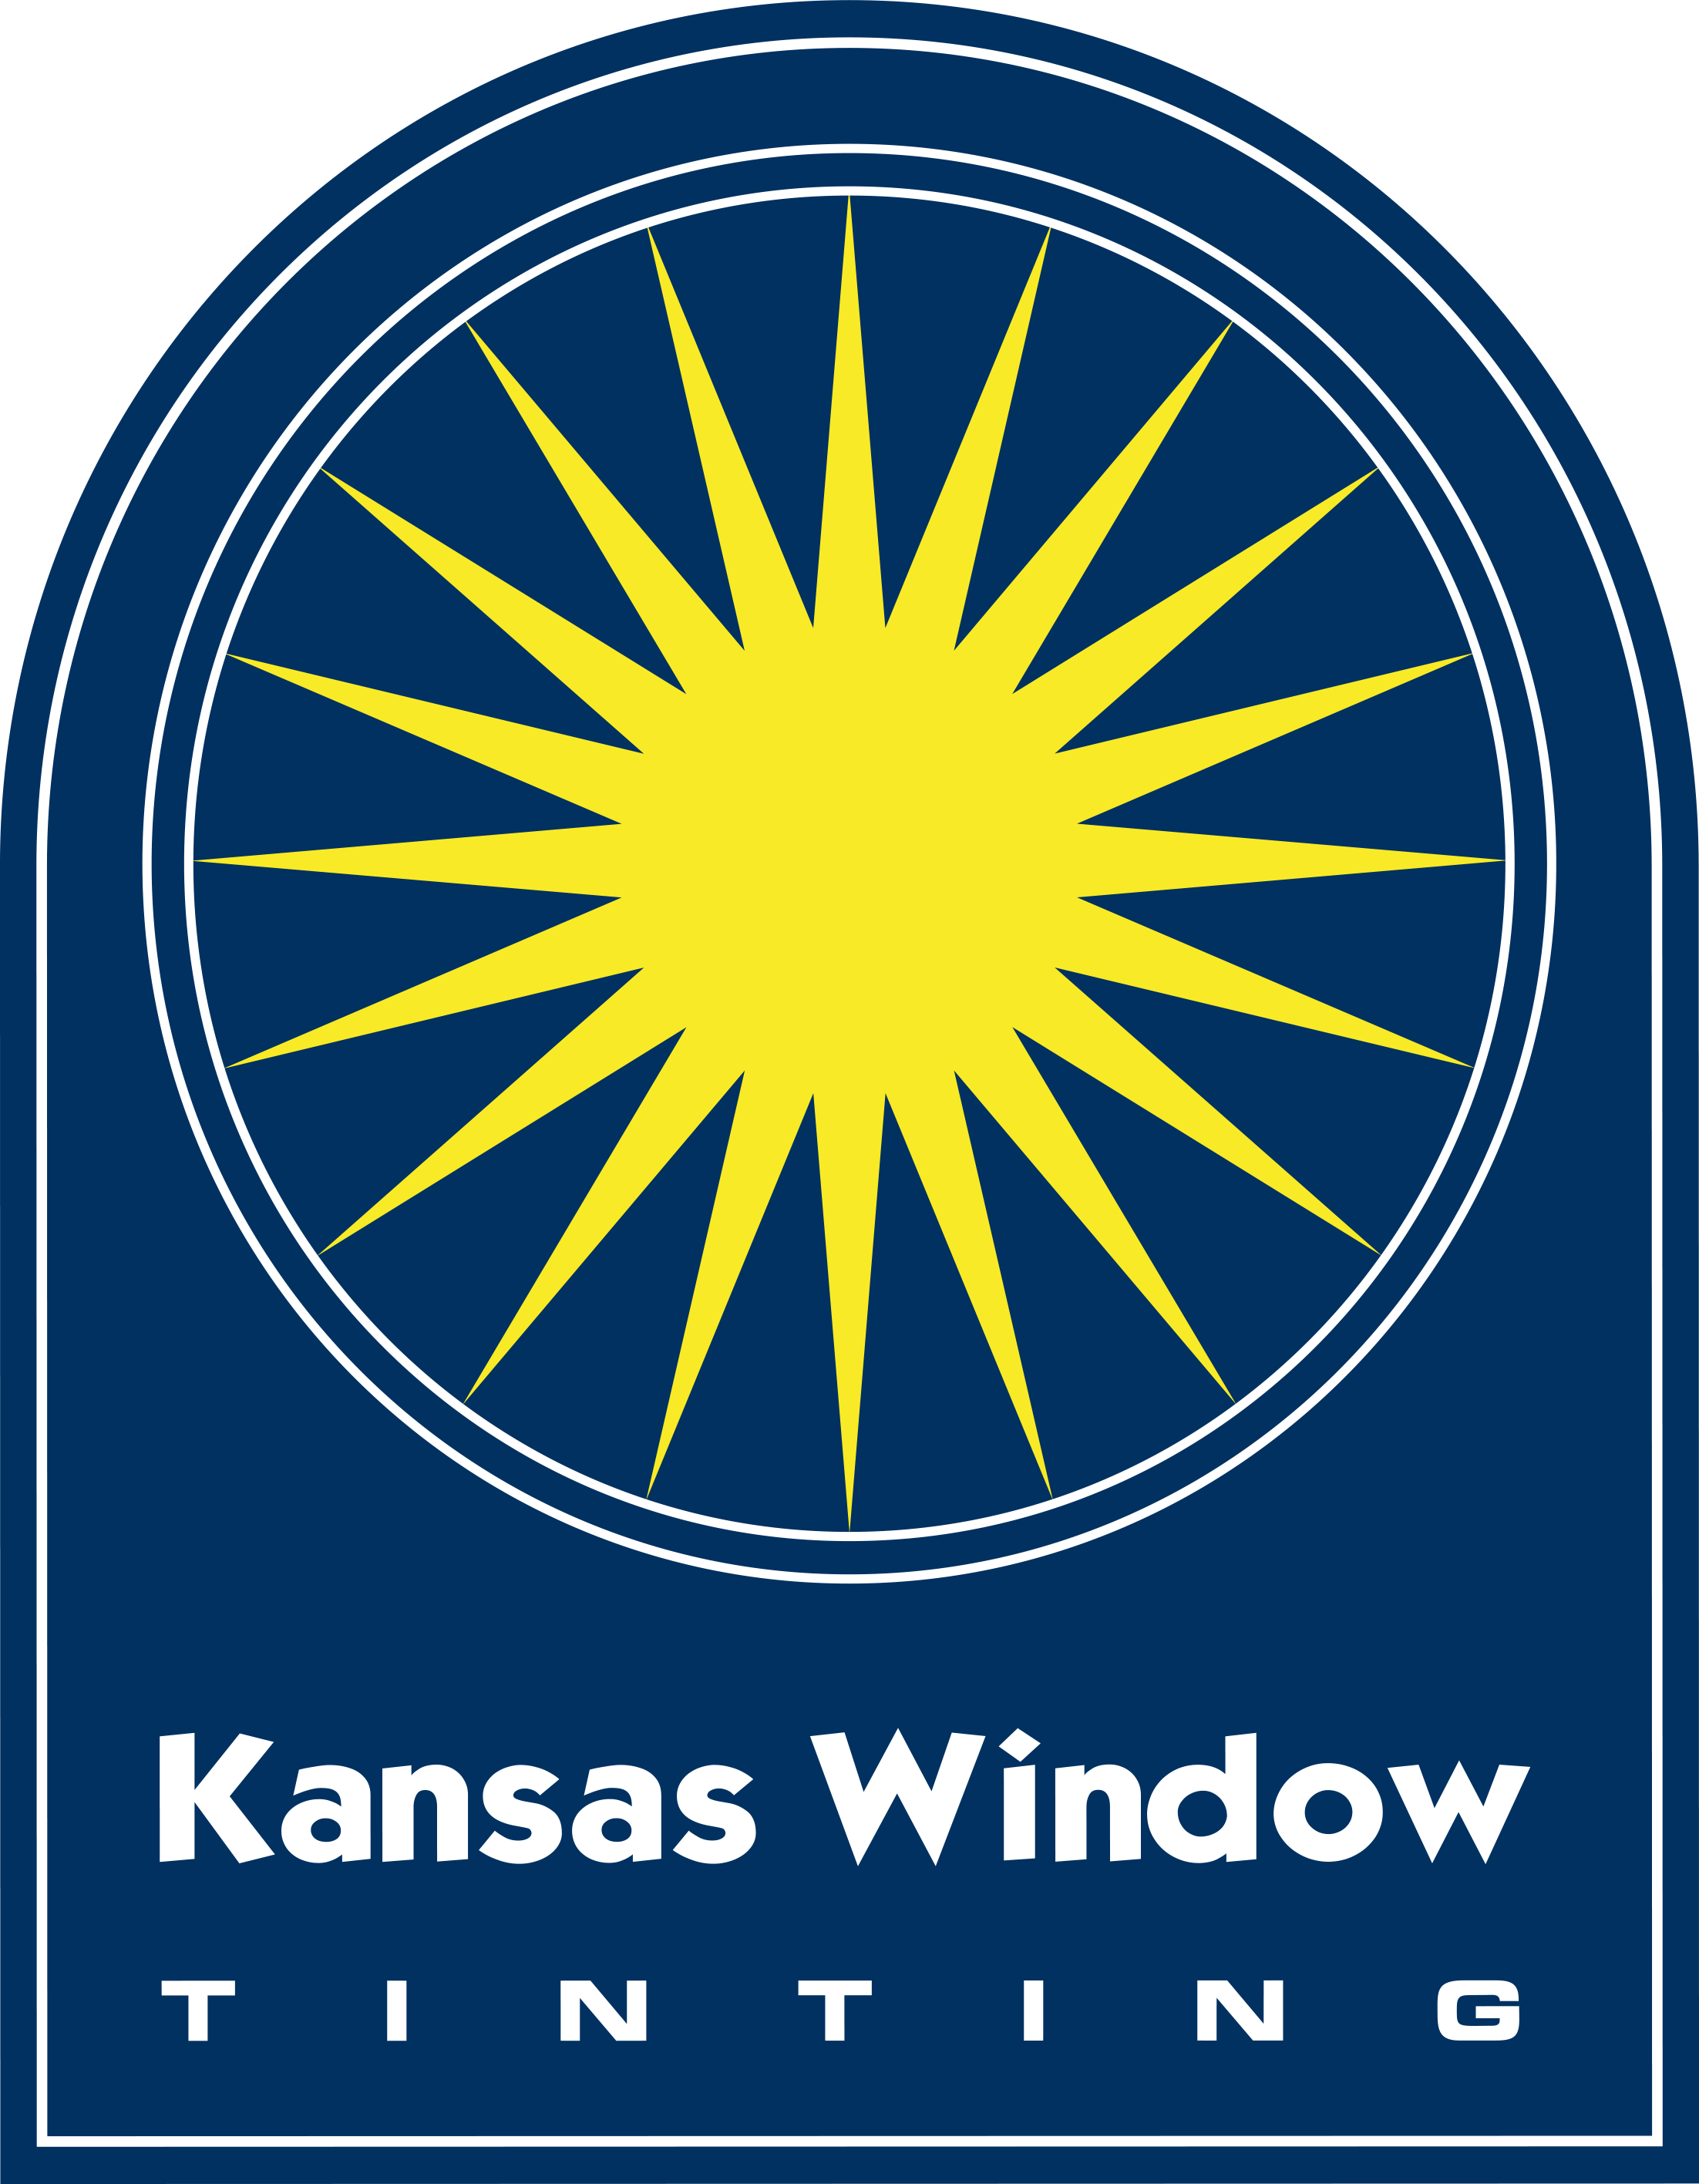 Home & Commercial Window Tinting Services in Wichita, Kasasa - Kansas Window Tinting